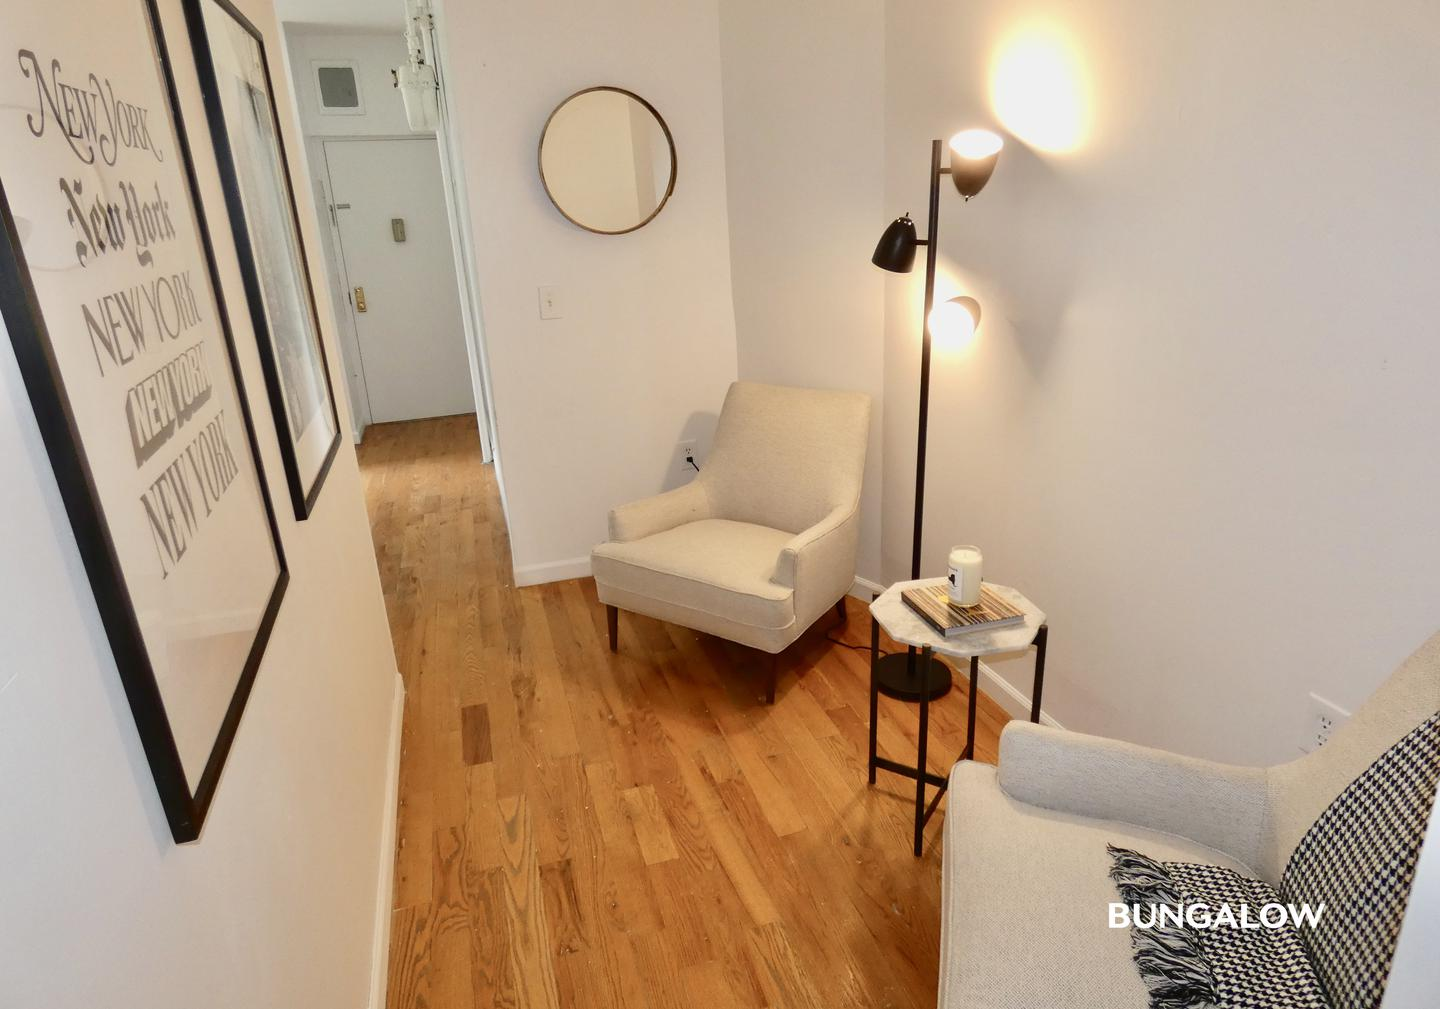 Private Room in Gorgeous Lower East Side Apartment with Arcade